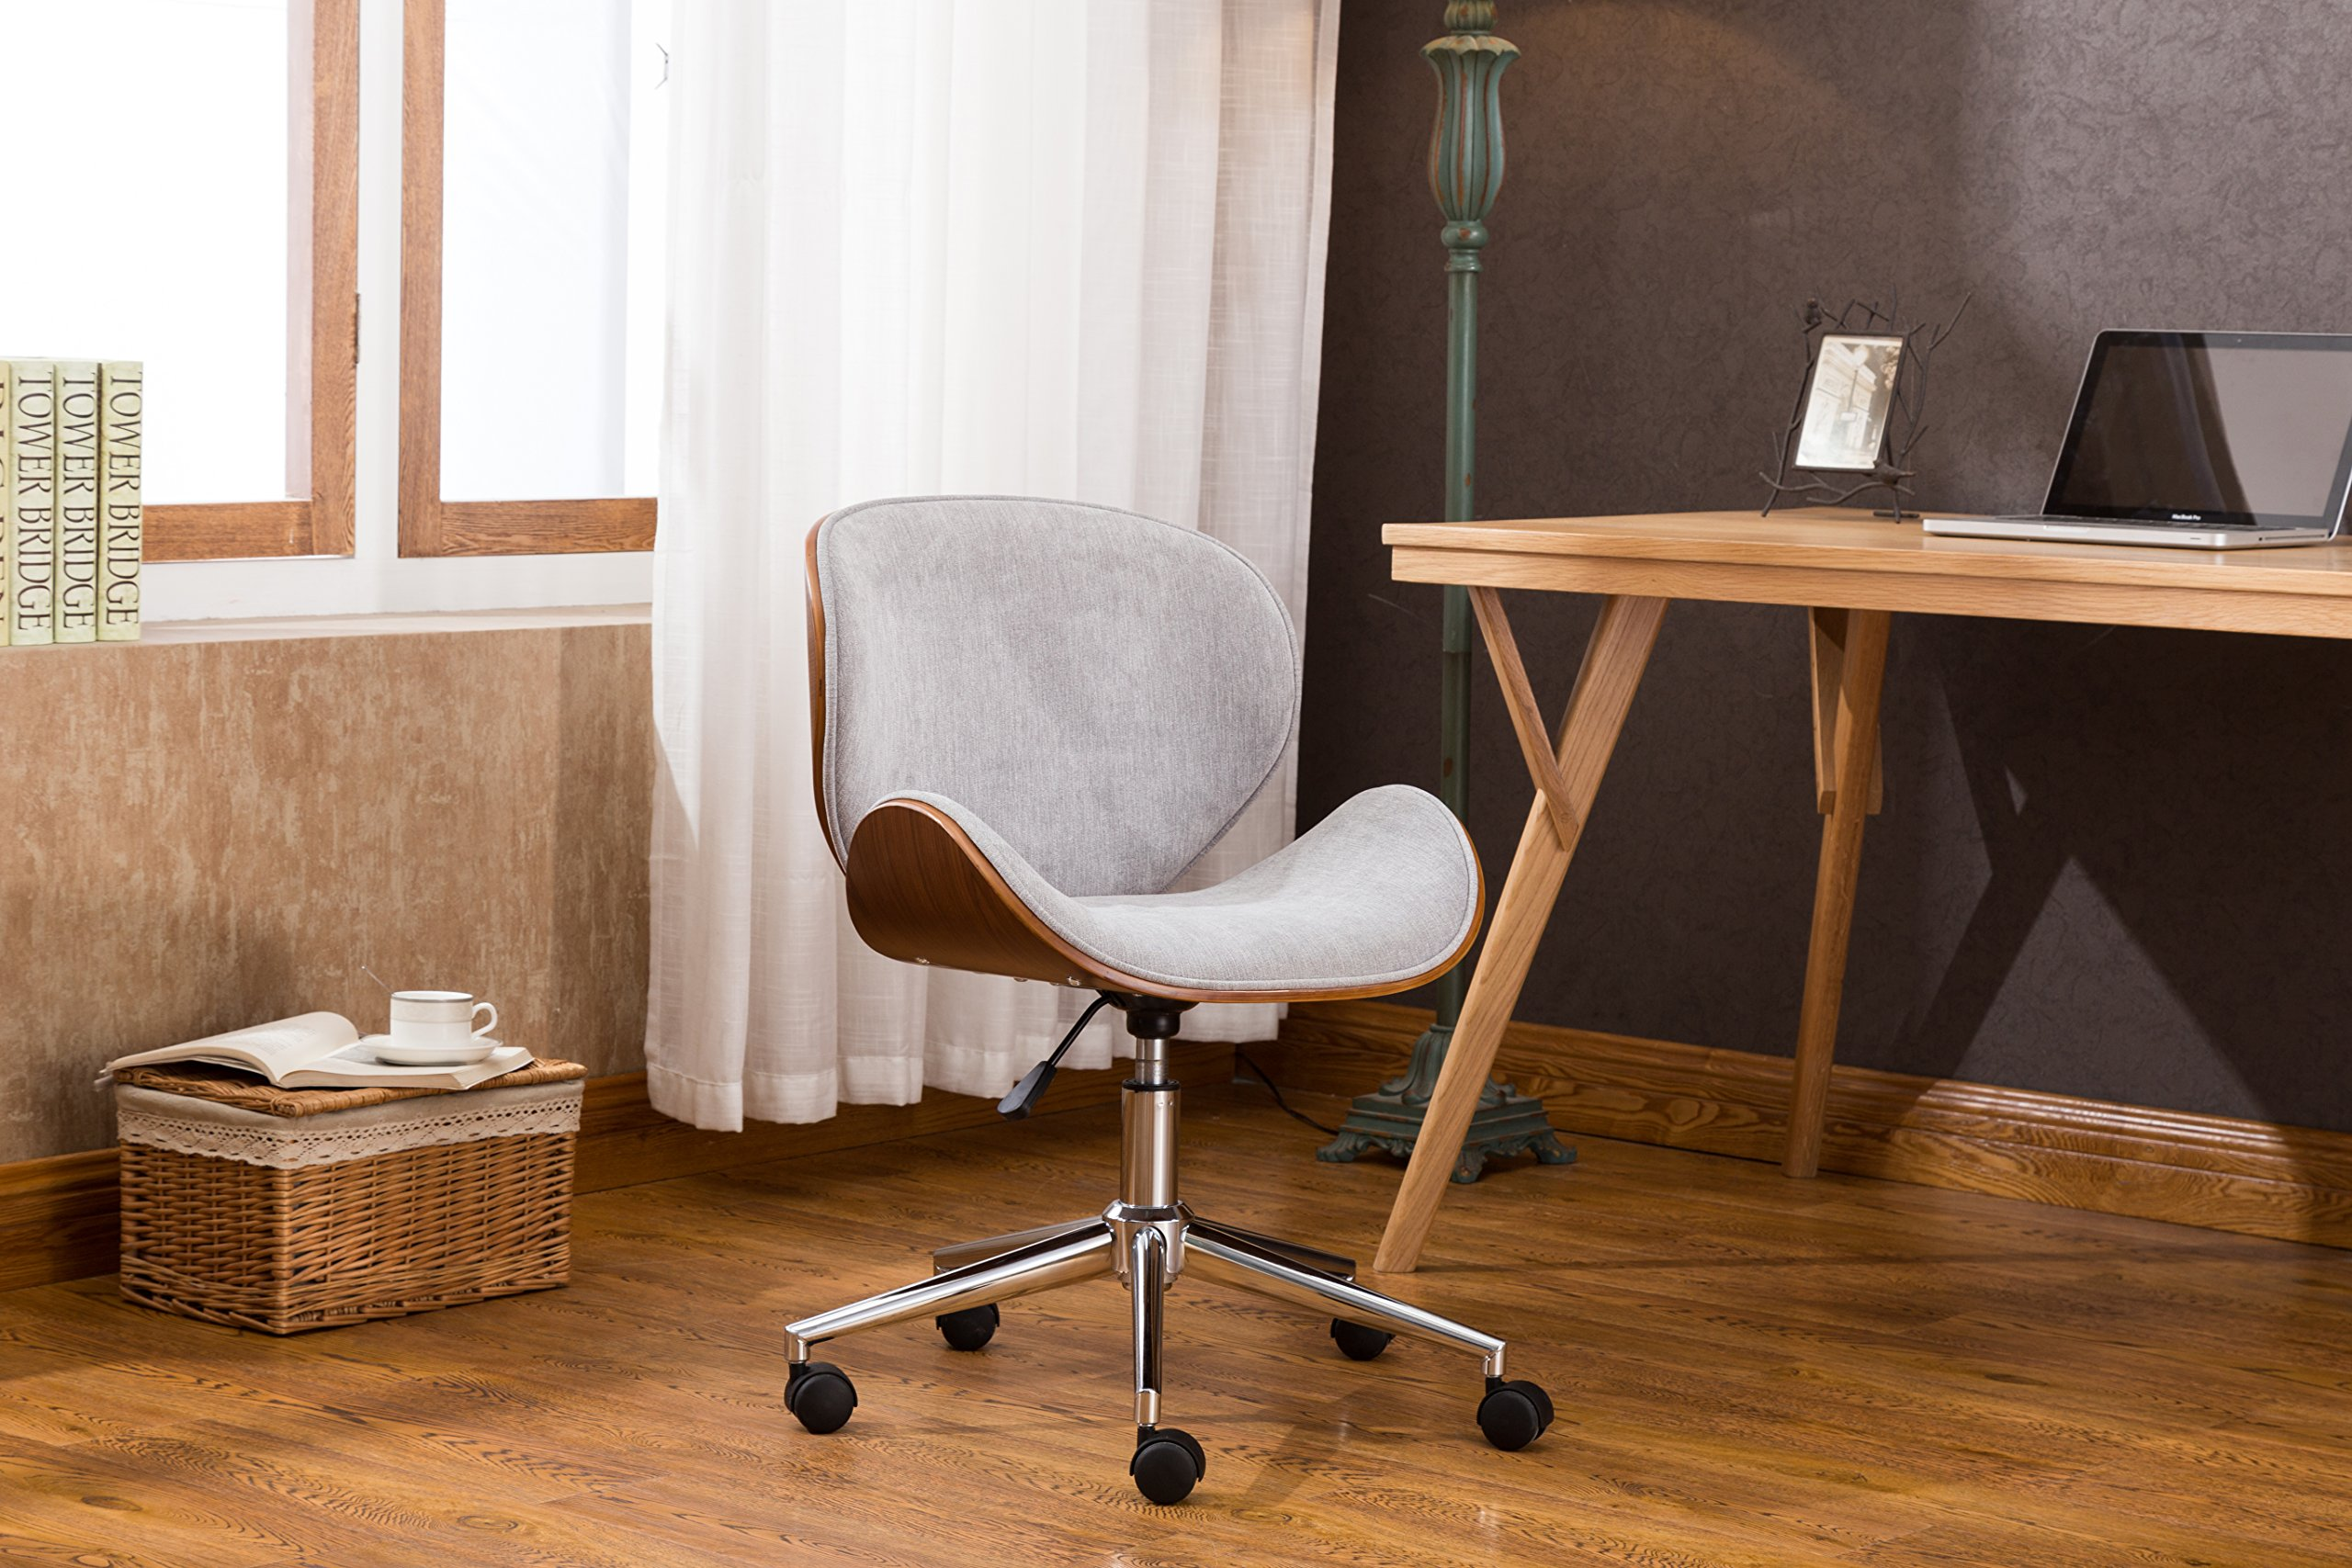 Porthos Home TFC034B GRY Branson Mid-century Style Office Chairs With Fabric Upholstery, Adjustable Height, 360° Swivel And Stainless Steel Legs, Gray by Porthos Home